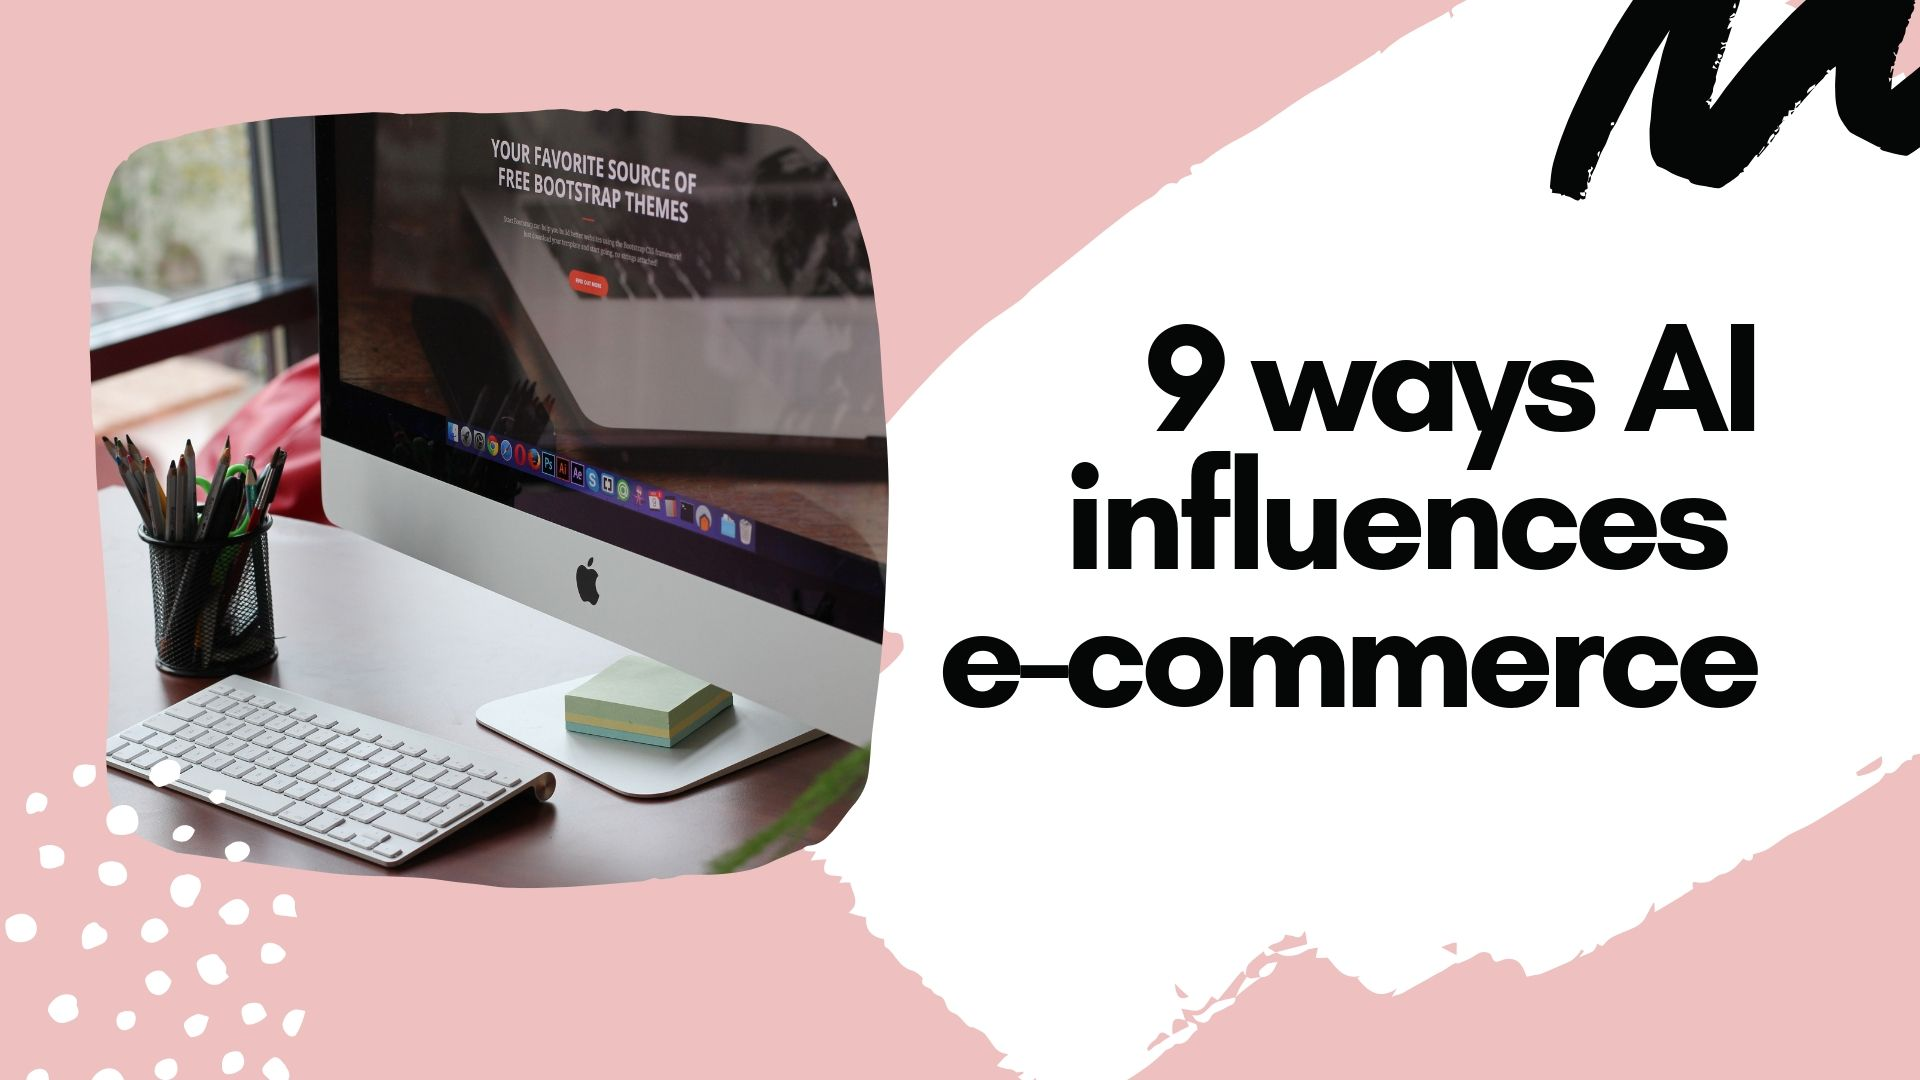 9 Ways AI influences e-commerce